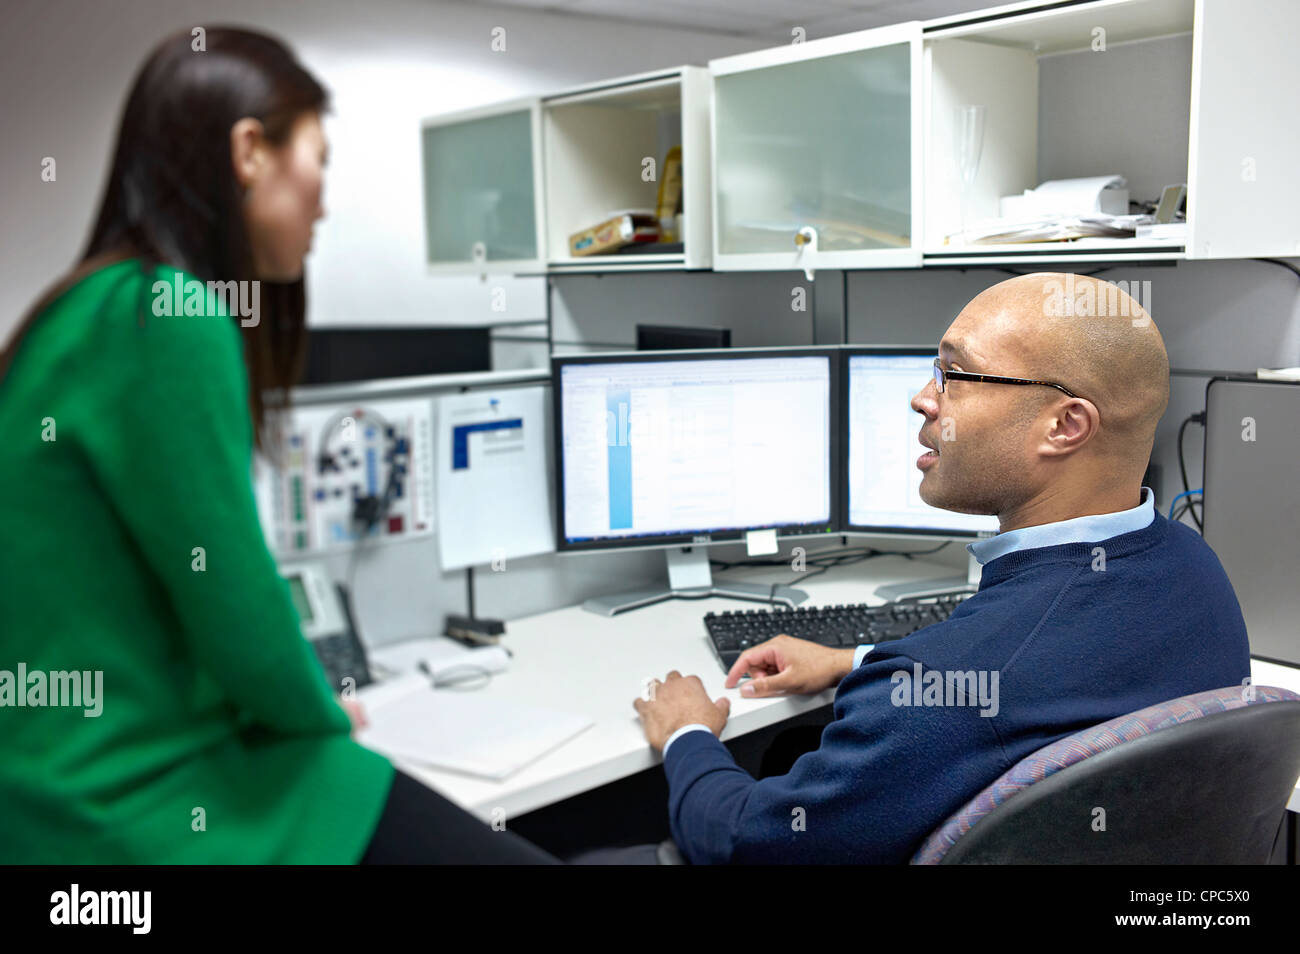 Two People talking at a cubicle in an office. - Stock Image